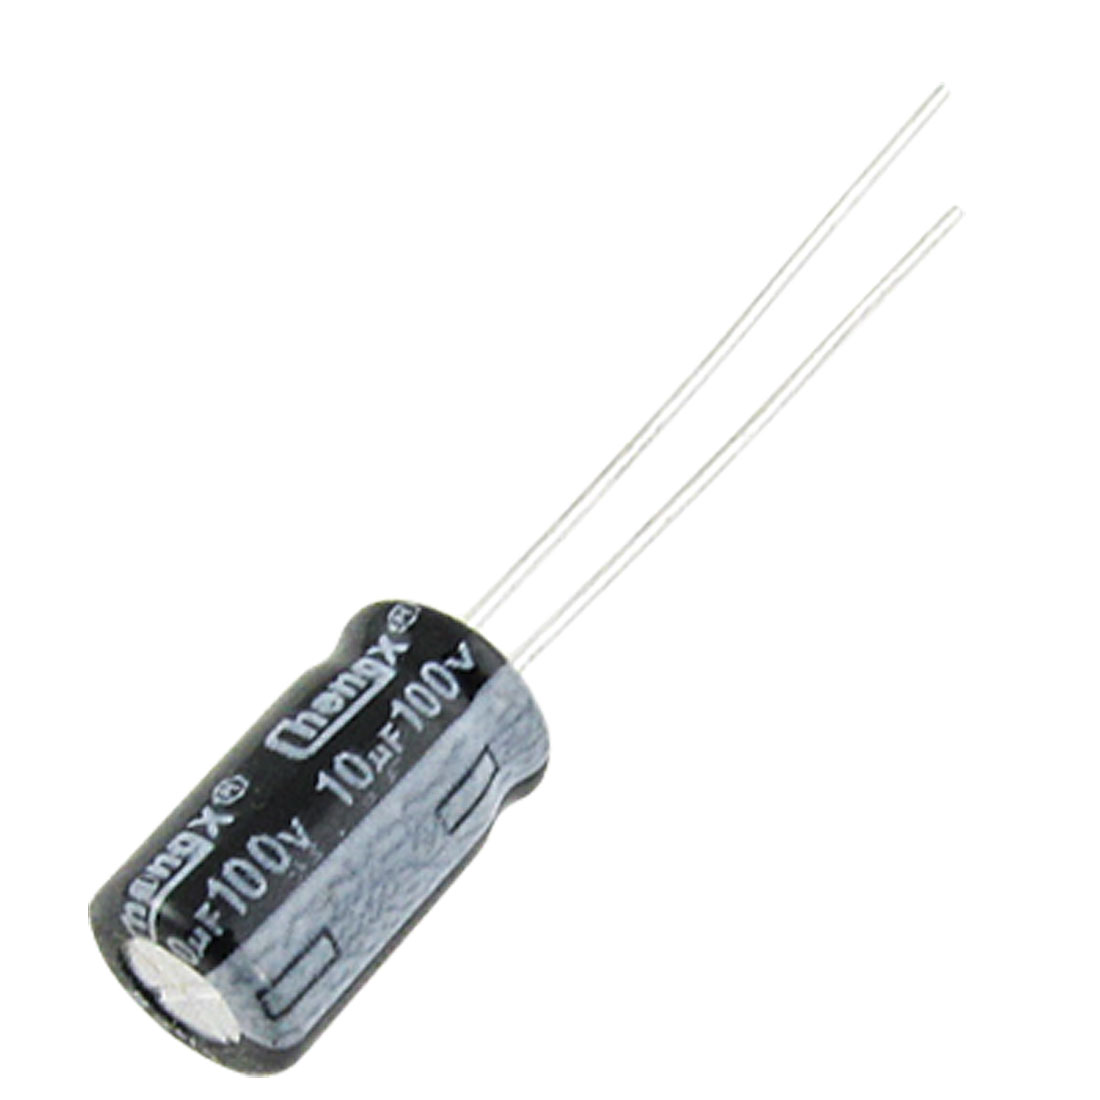 100 Pcs 6.3x11mm 100V 10uF Aluminum Electrolytic Capacitors